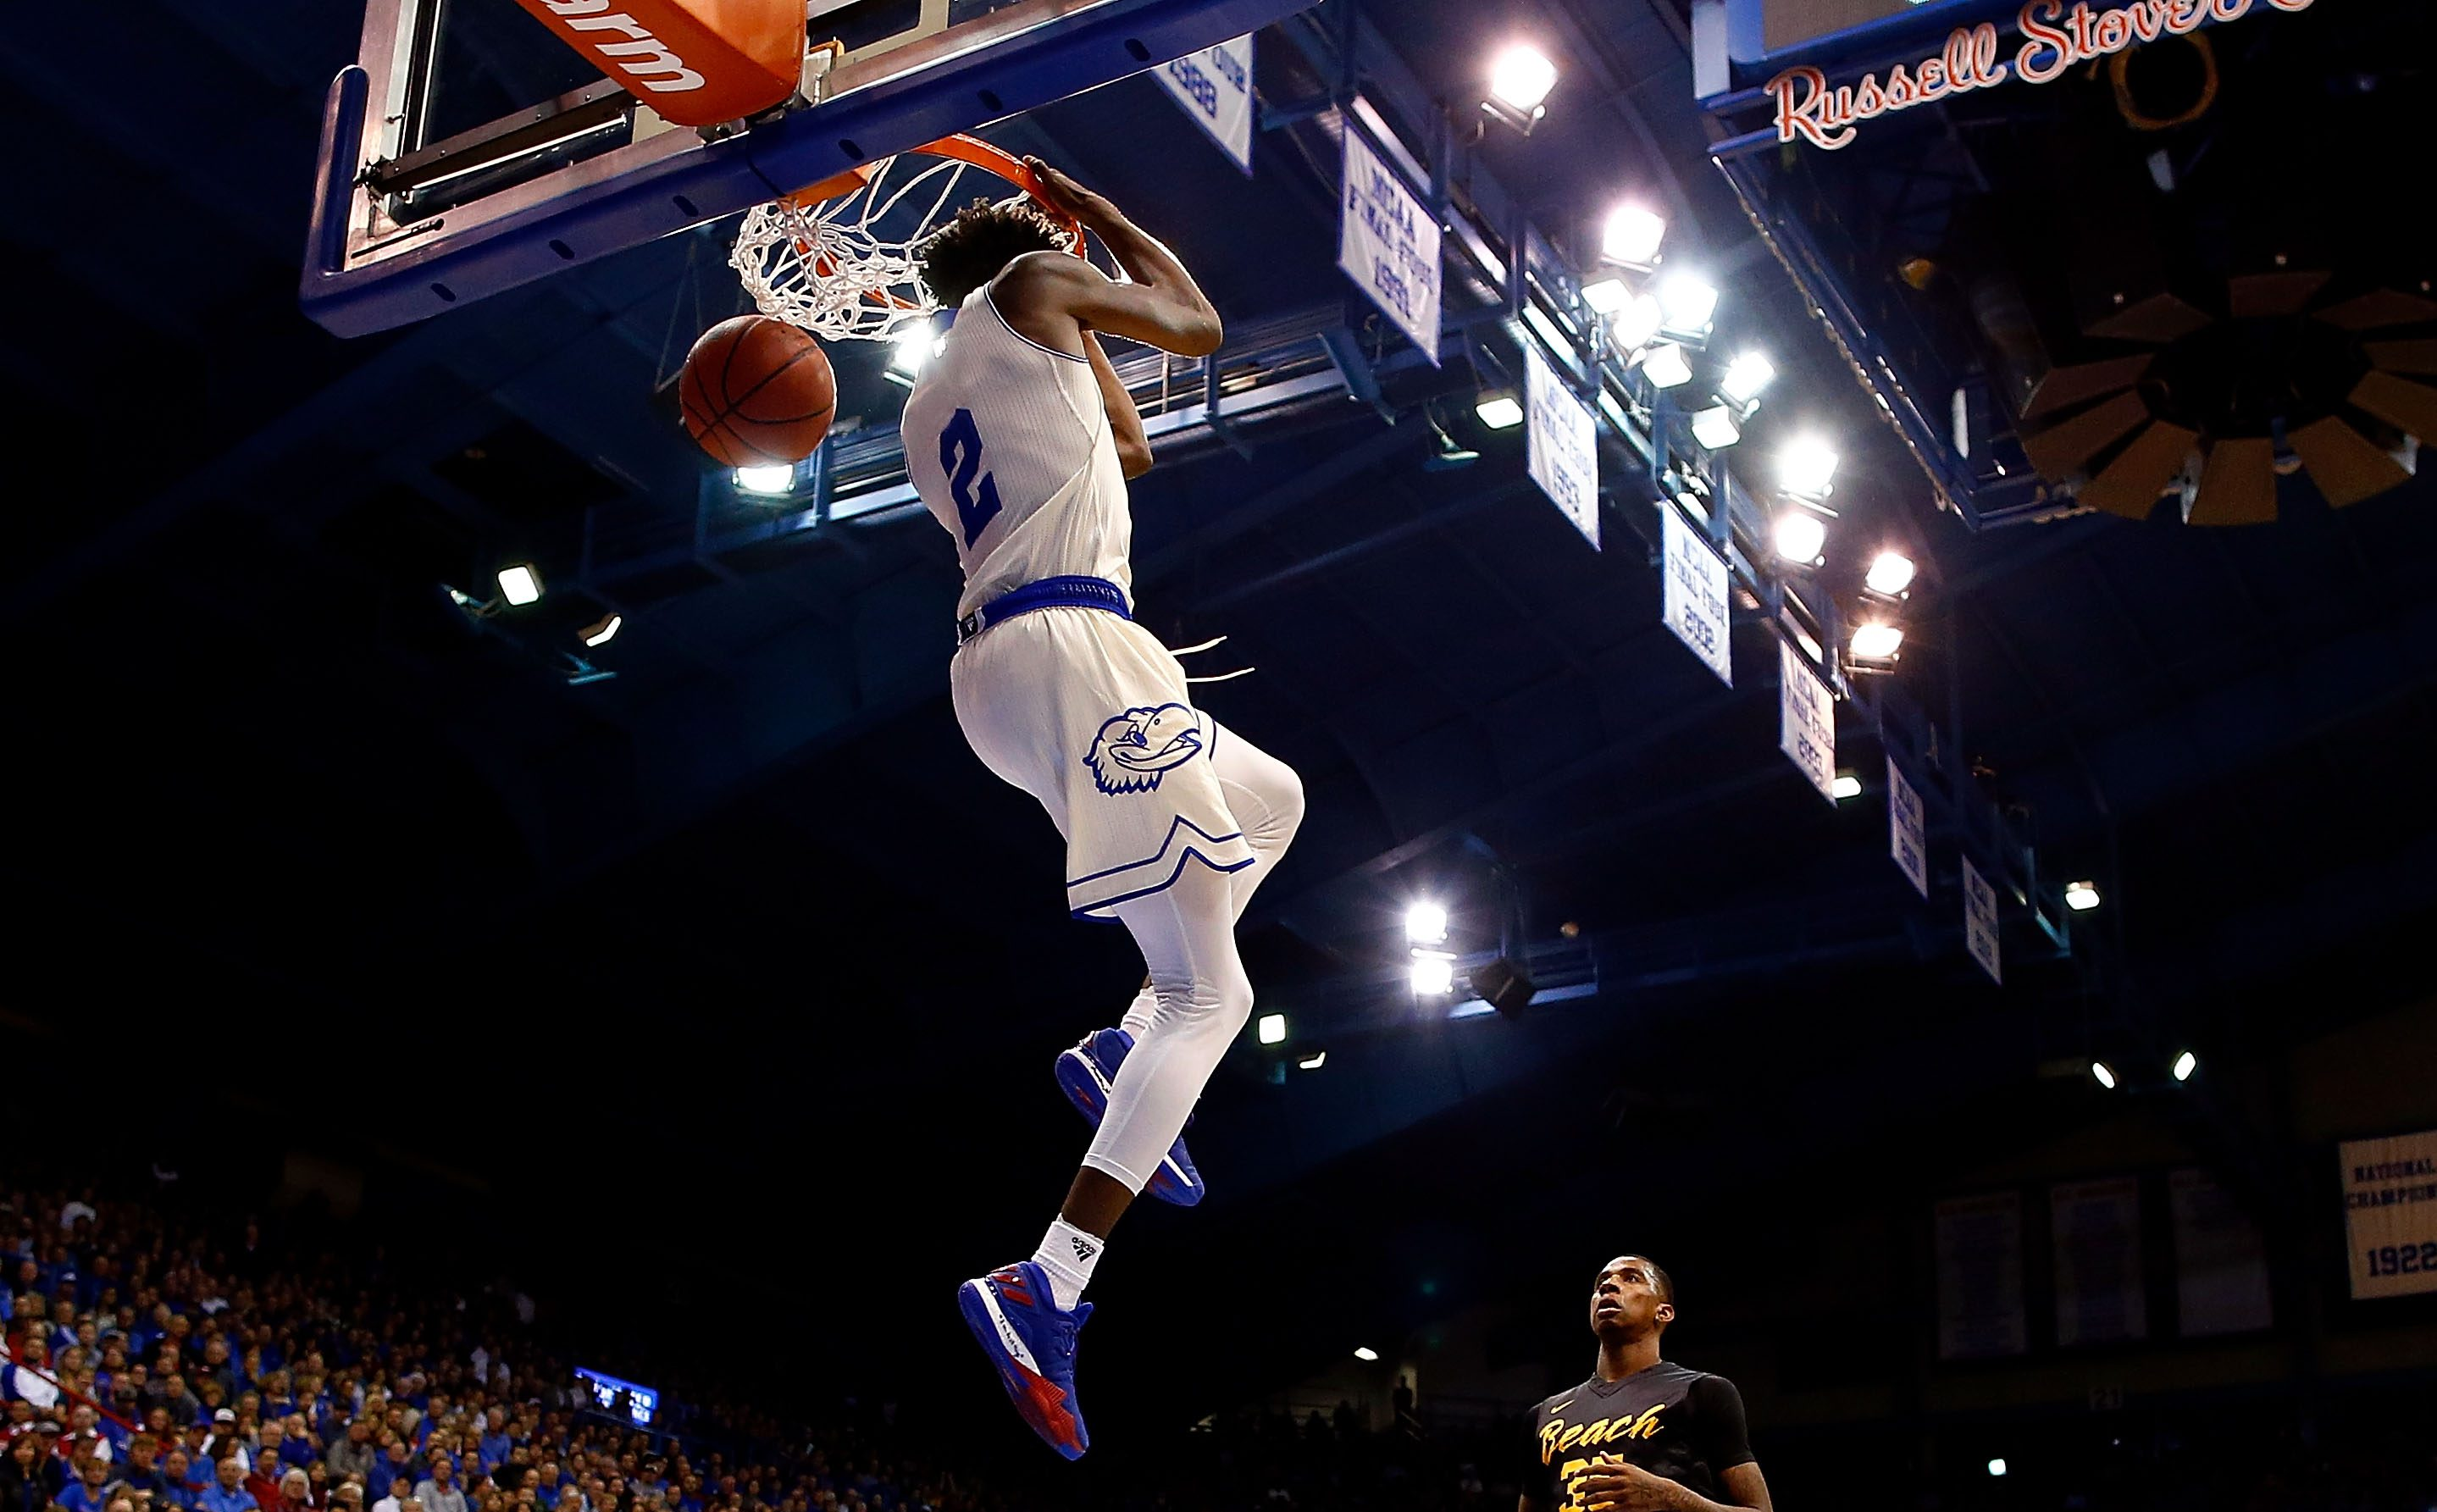 LAWRENCE, KS - NOVEMBER 29: Lagerald Vick #2 of the Kansas Jayhawks dunks on a fast break as Javonntie Jackson #35 of the Long Beach State 49ers looks on during the game at Allen Fieldhouse on November 29, 2016 in Lawrence, Kansas. (Photo by Jamie Squire/Getty Images)